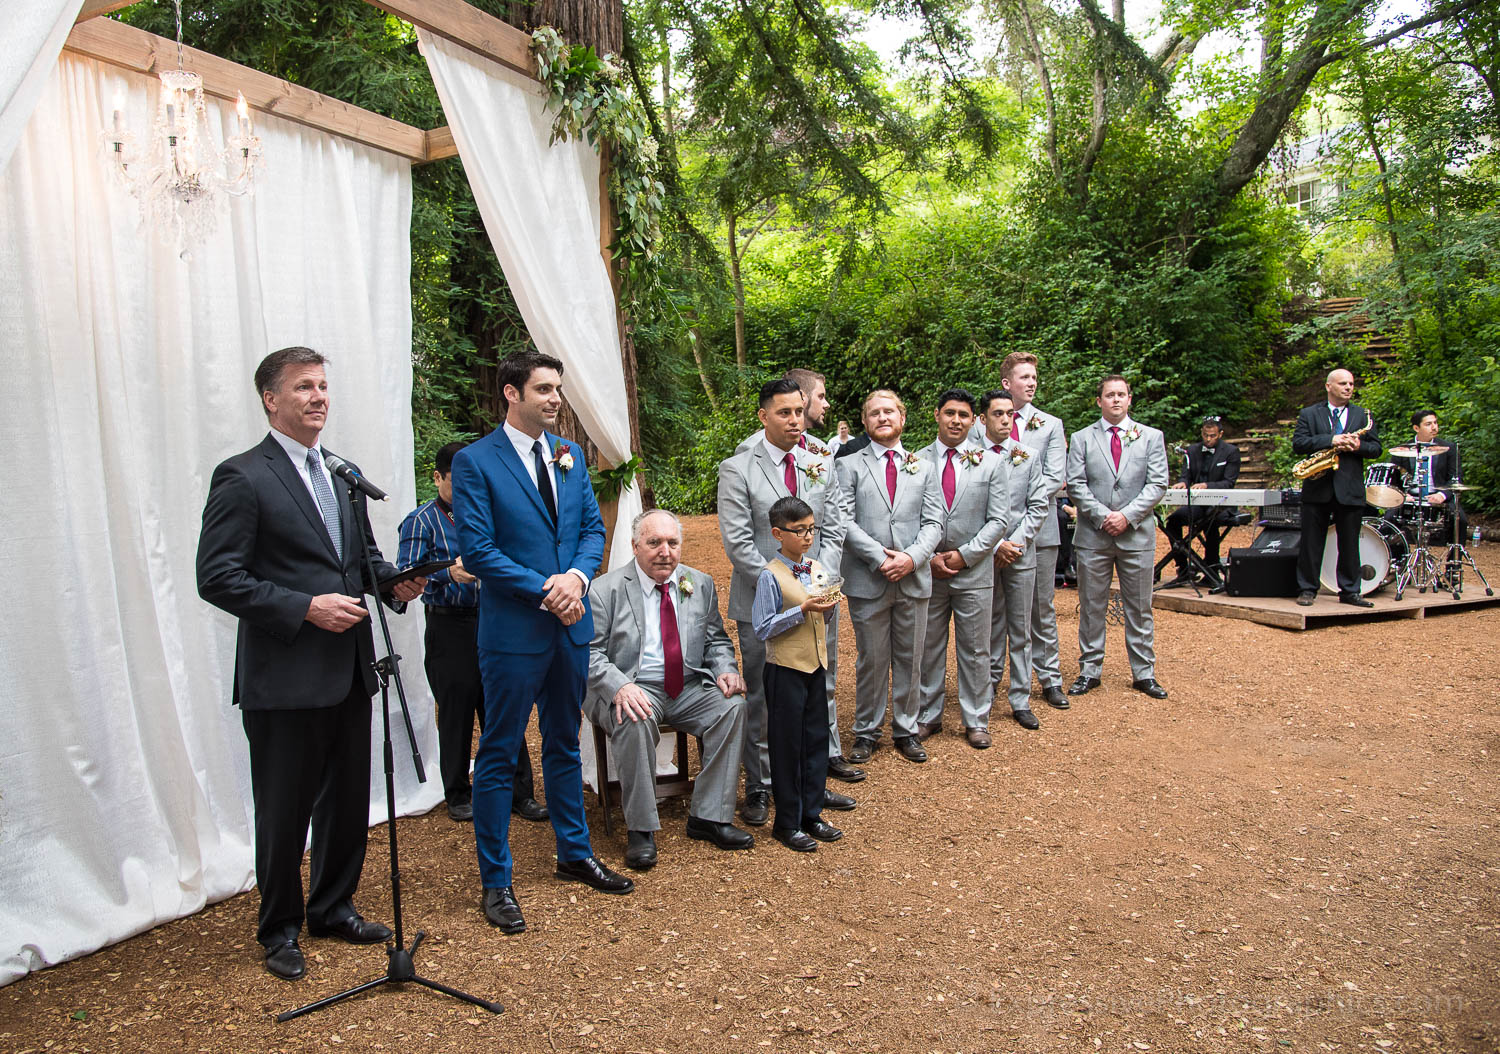 014-sand-rock-farm-wedding-ceremony-014